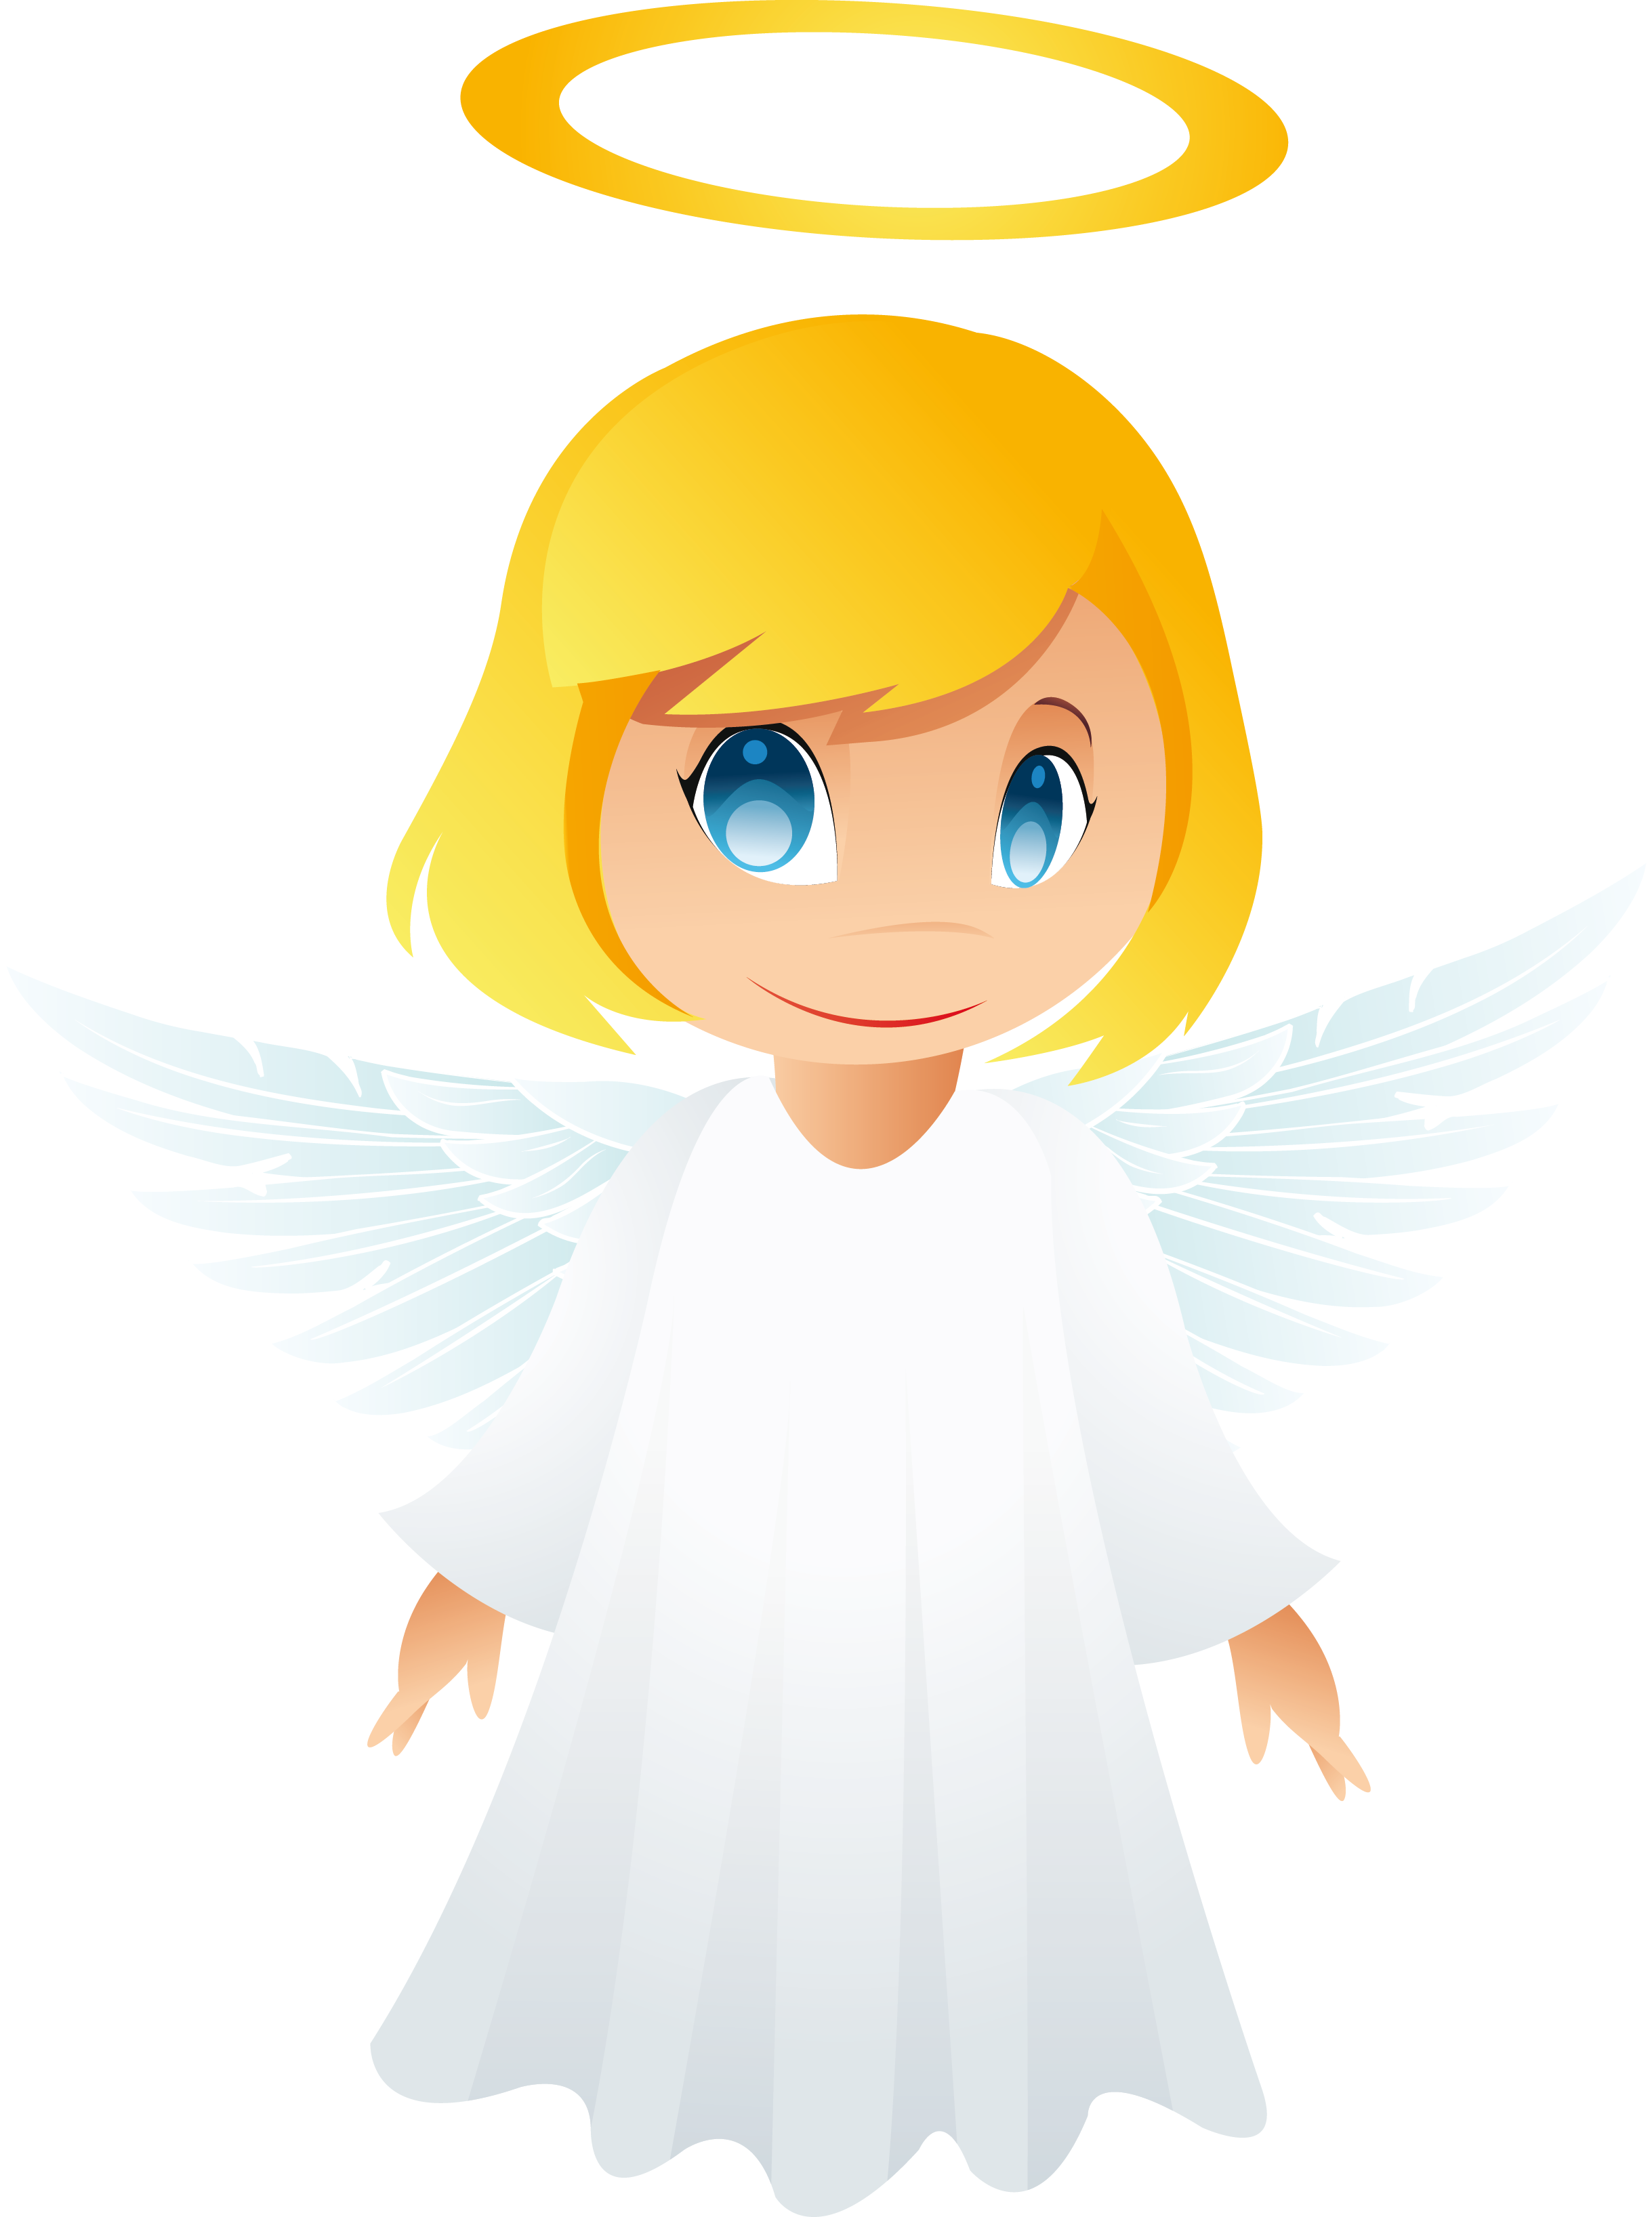 angel clipart free graphics of cherubs and angels the cliparts rh pinterest com christmas angel tree clipart christmas angel clipart black and white